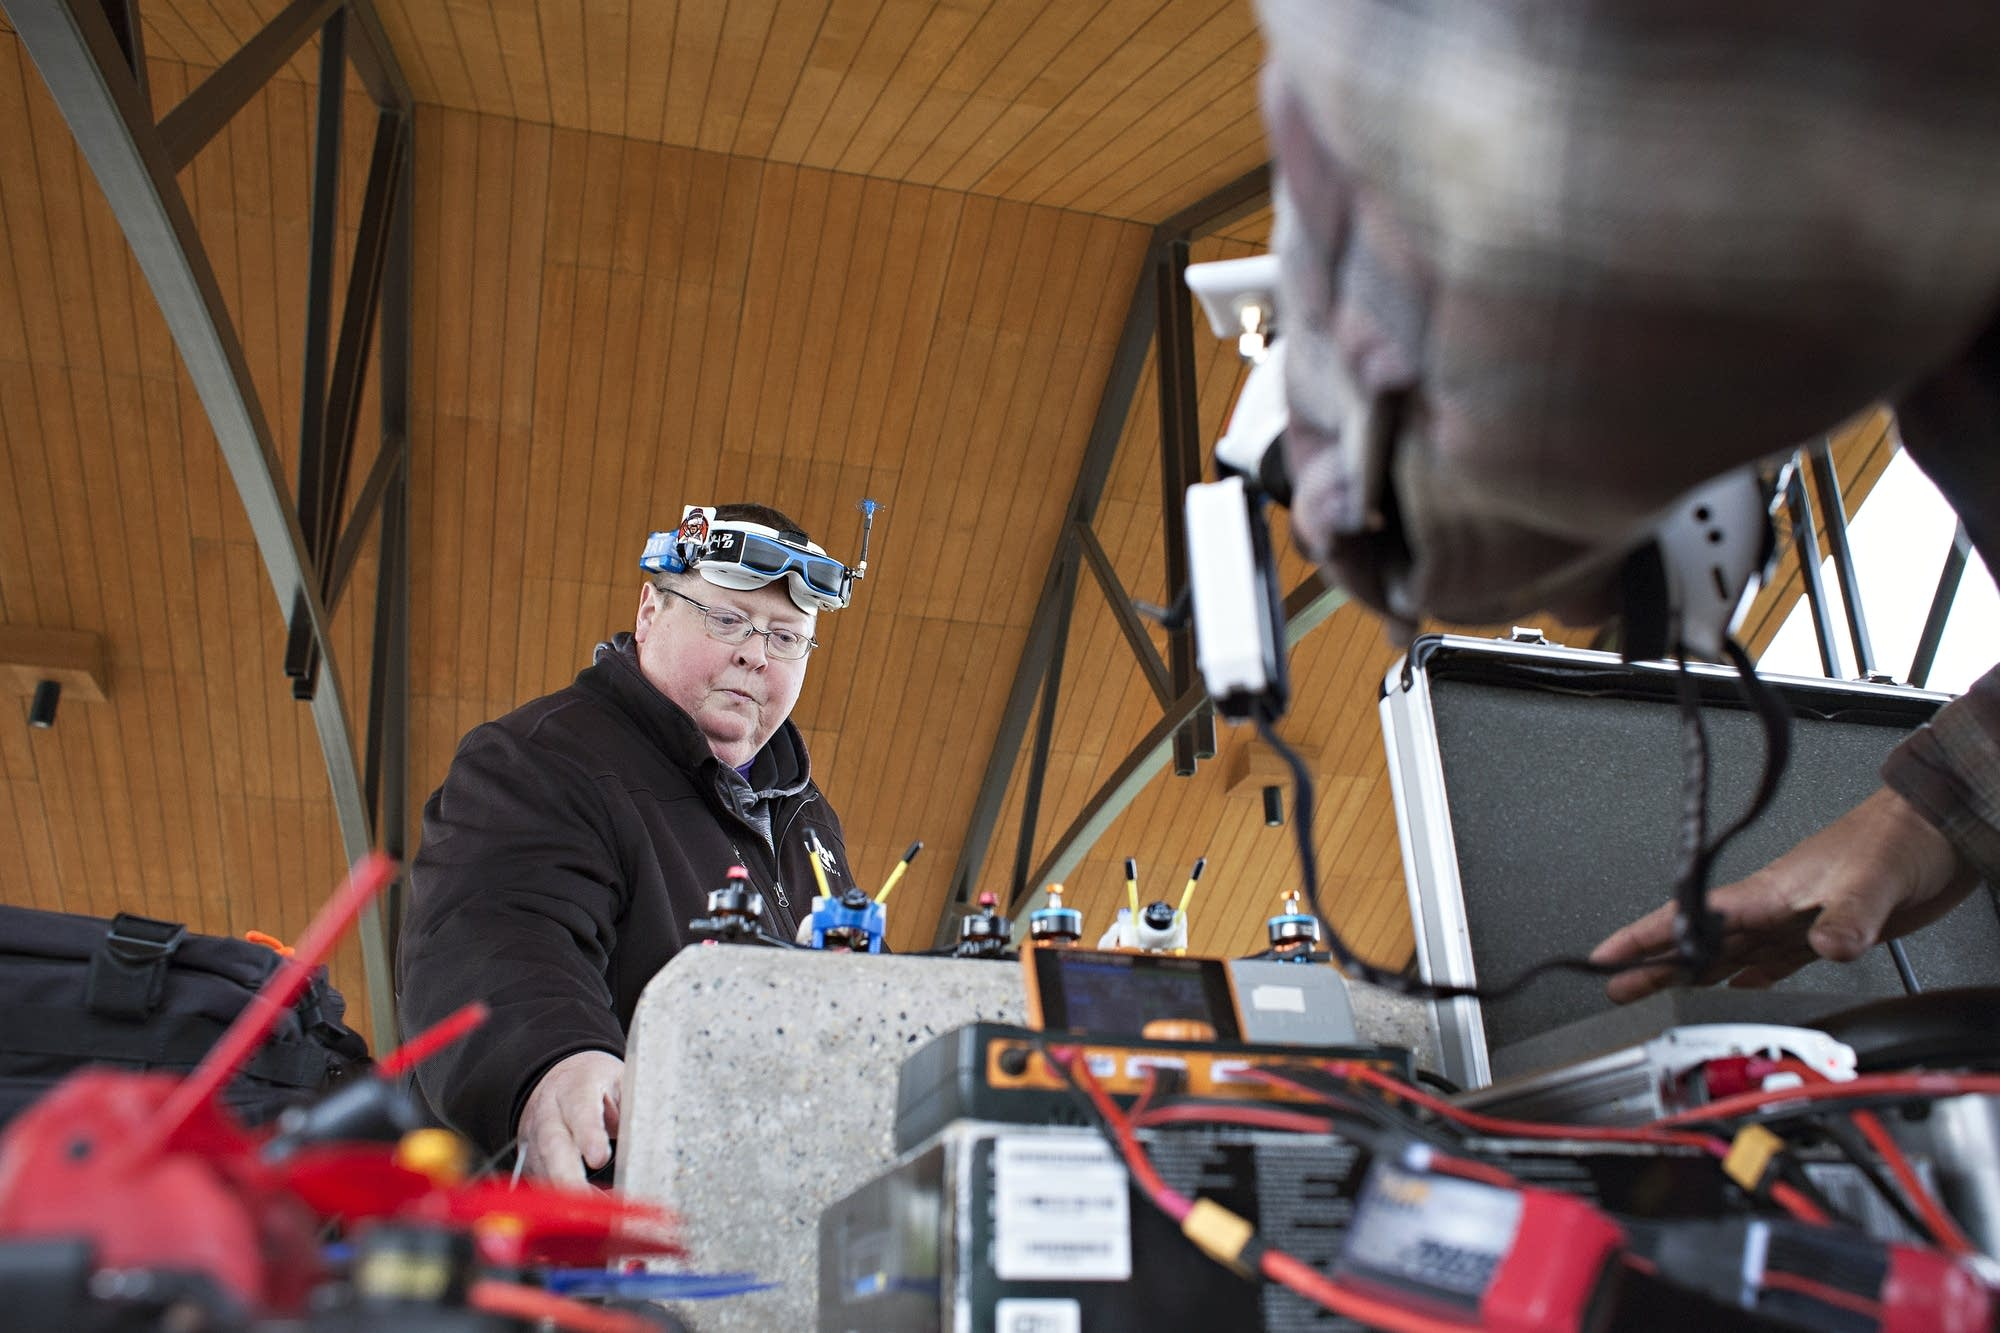 Pilot Tony Bjerke of Fargo prepares his drone and related gear for a race.